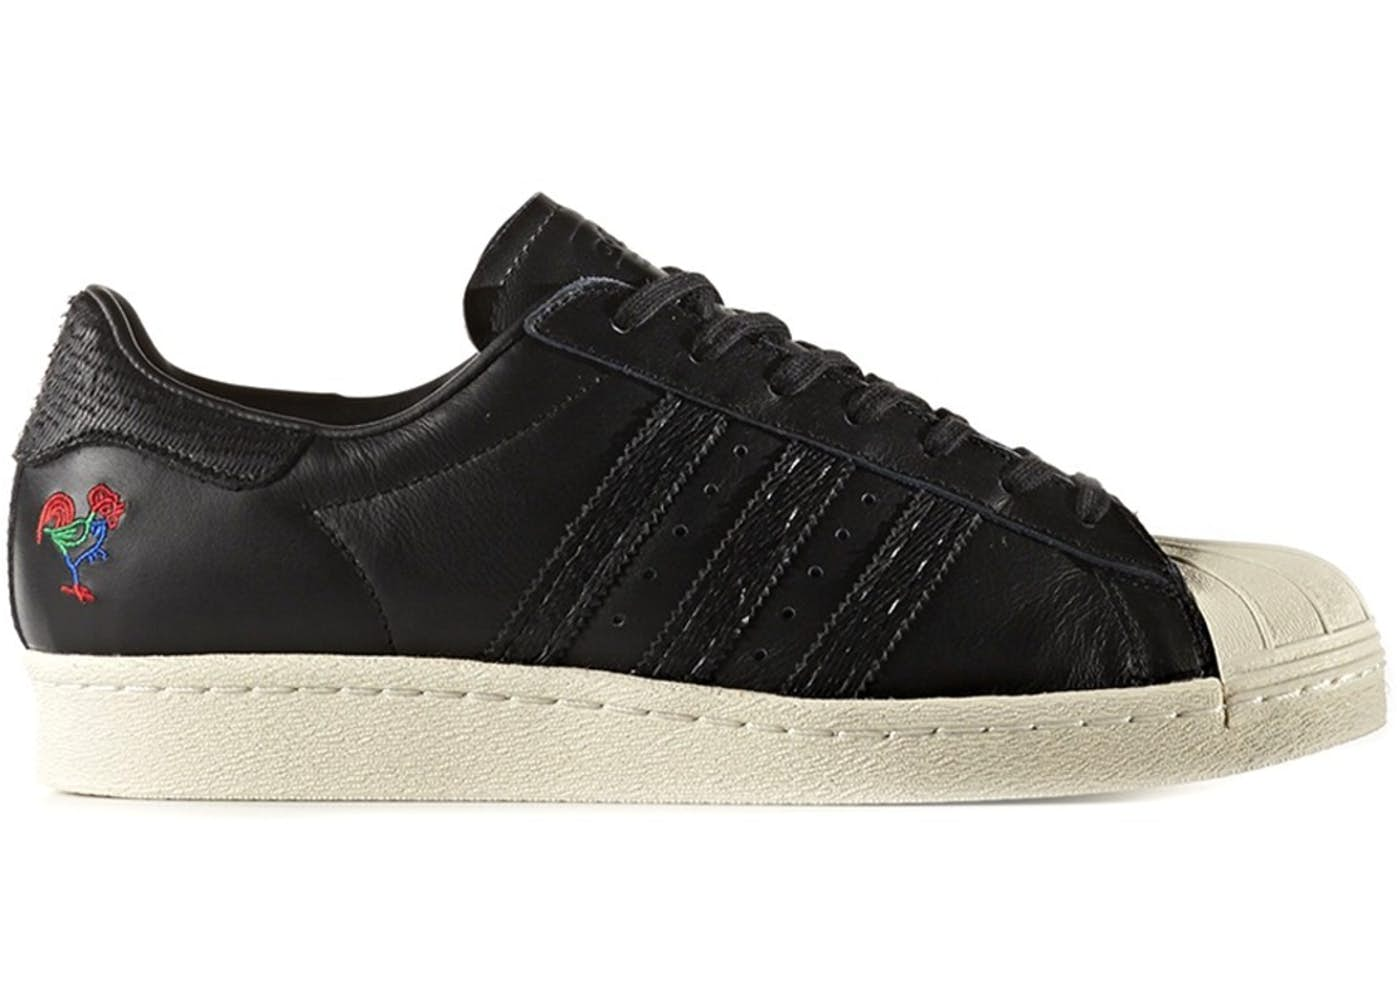 adidas SUPERSTAR 2 S 80 Leather Shoes Sneakers Retro NEW Men